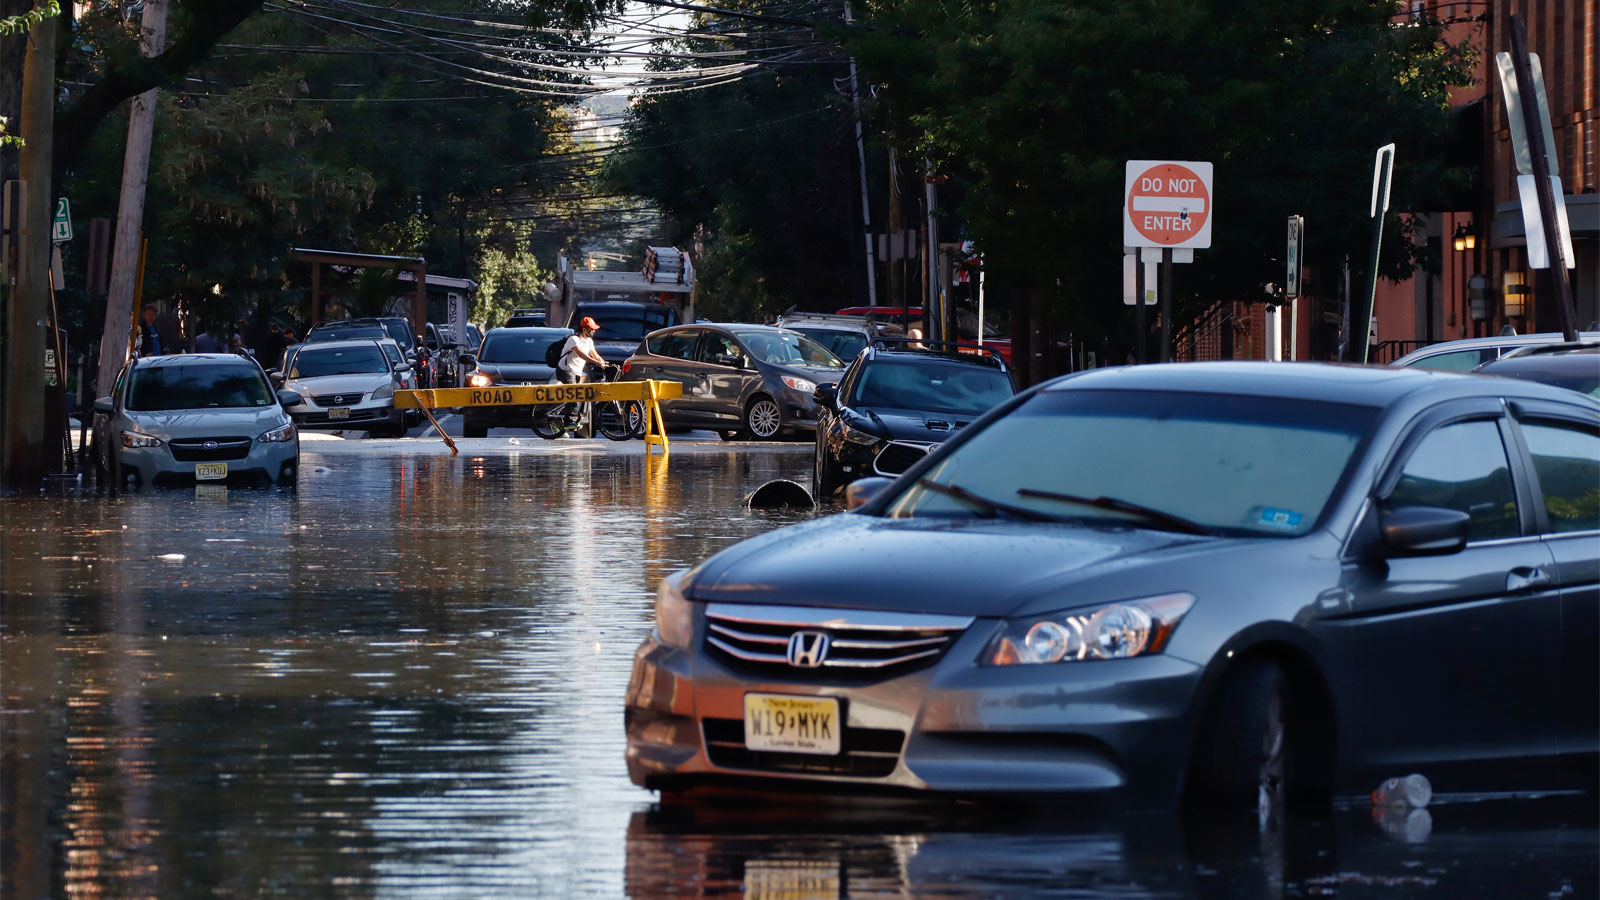 An abandoned car sits on a flooded street in Hoboken, New Jersey